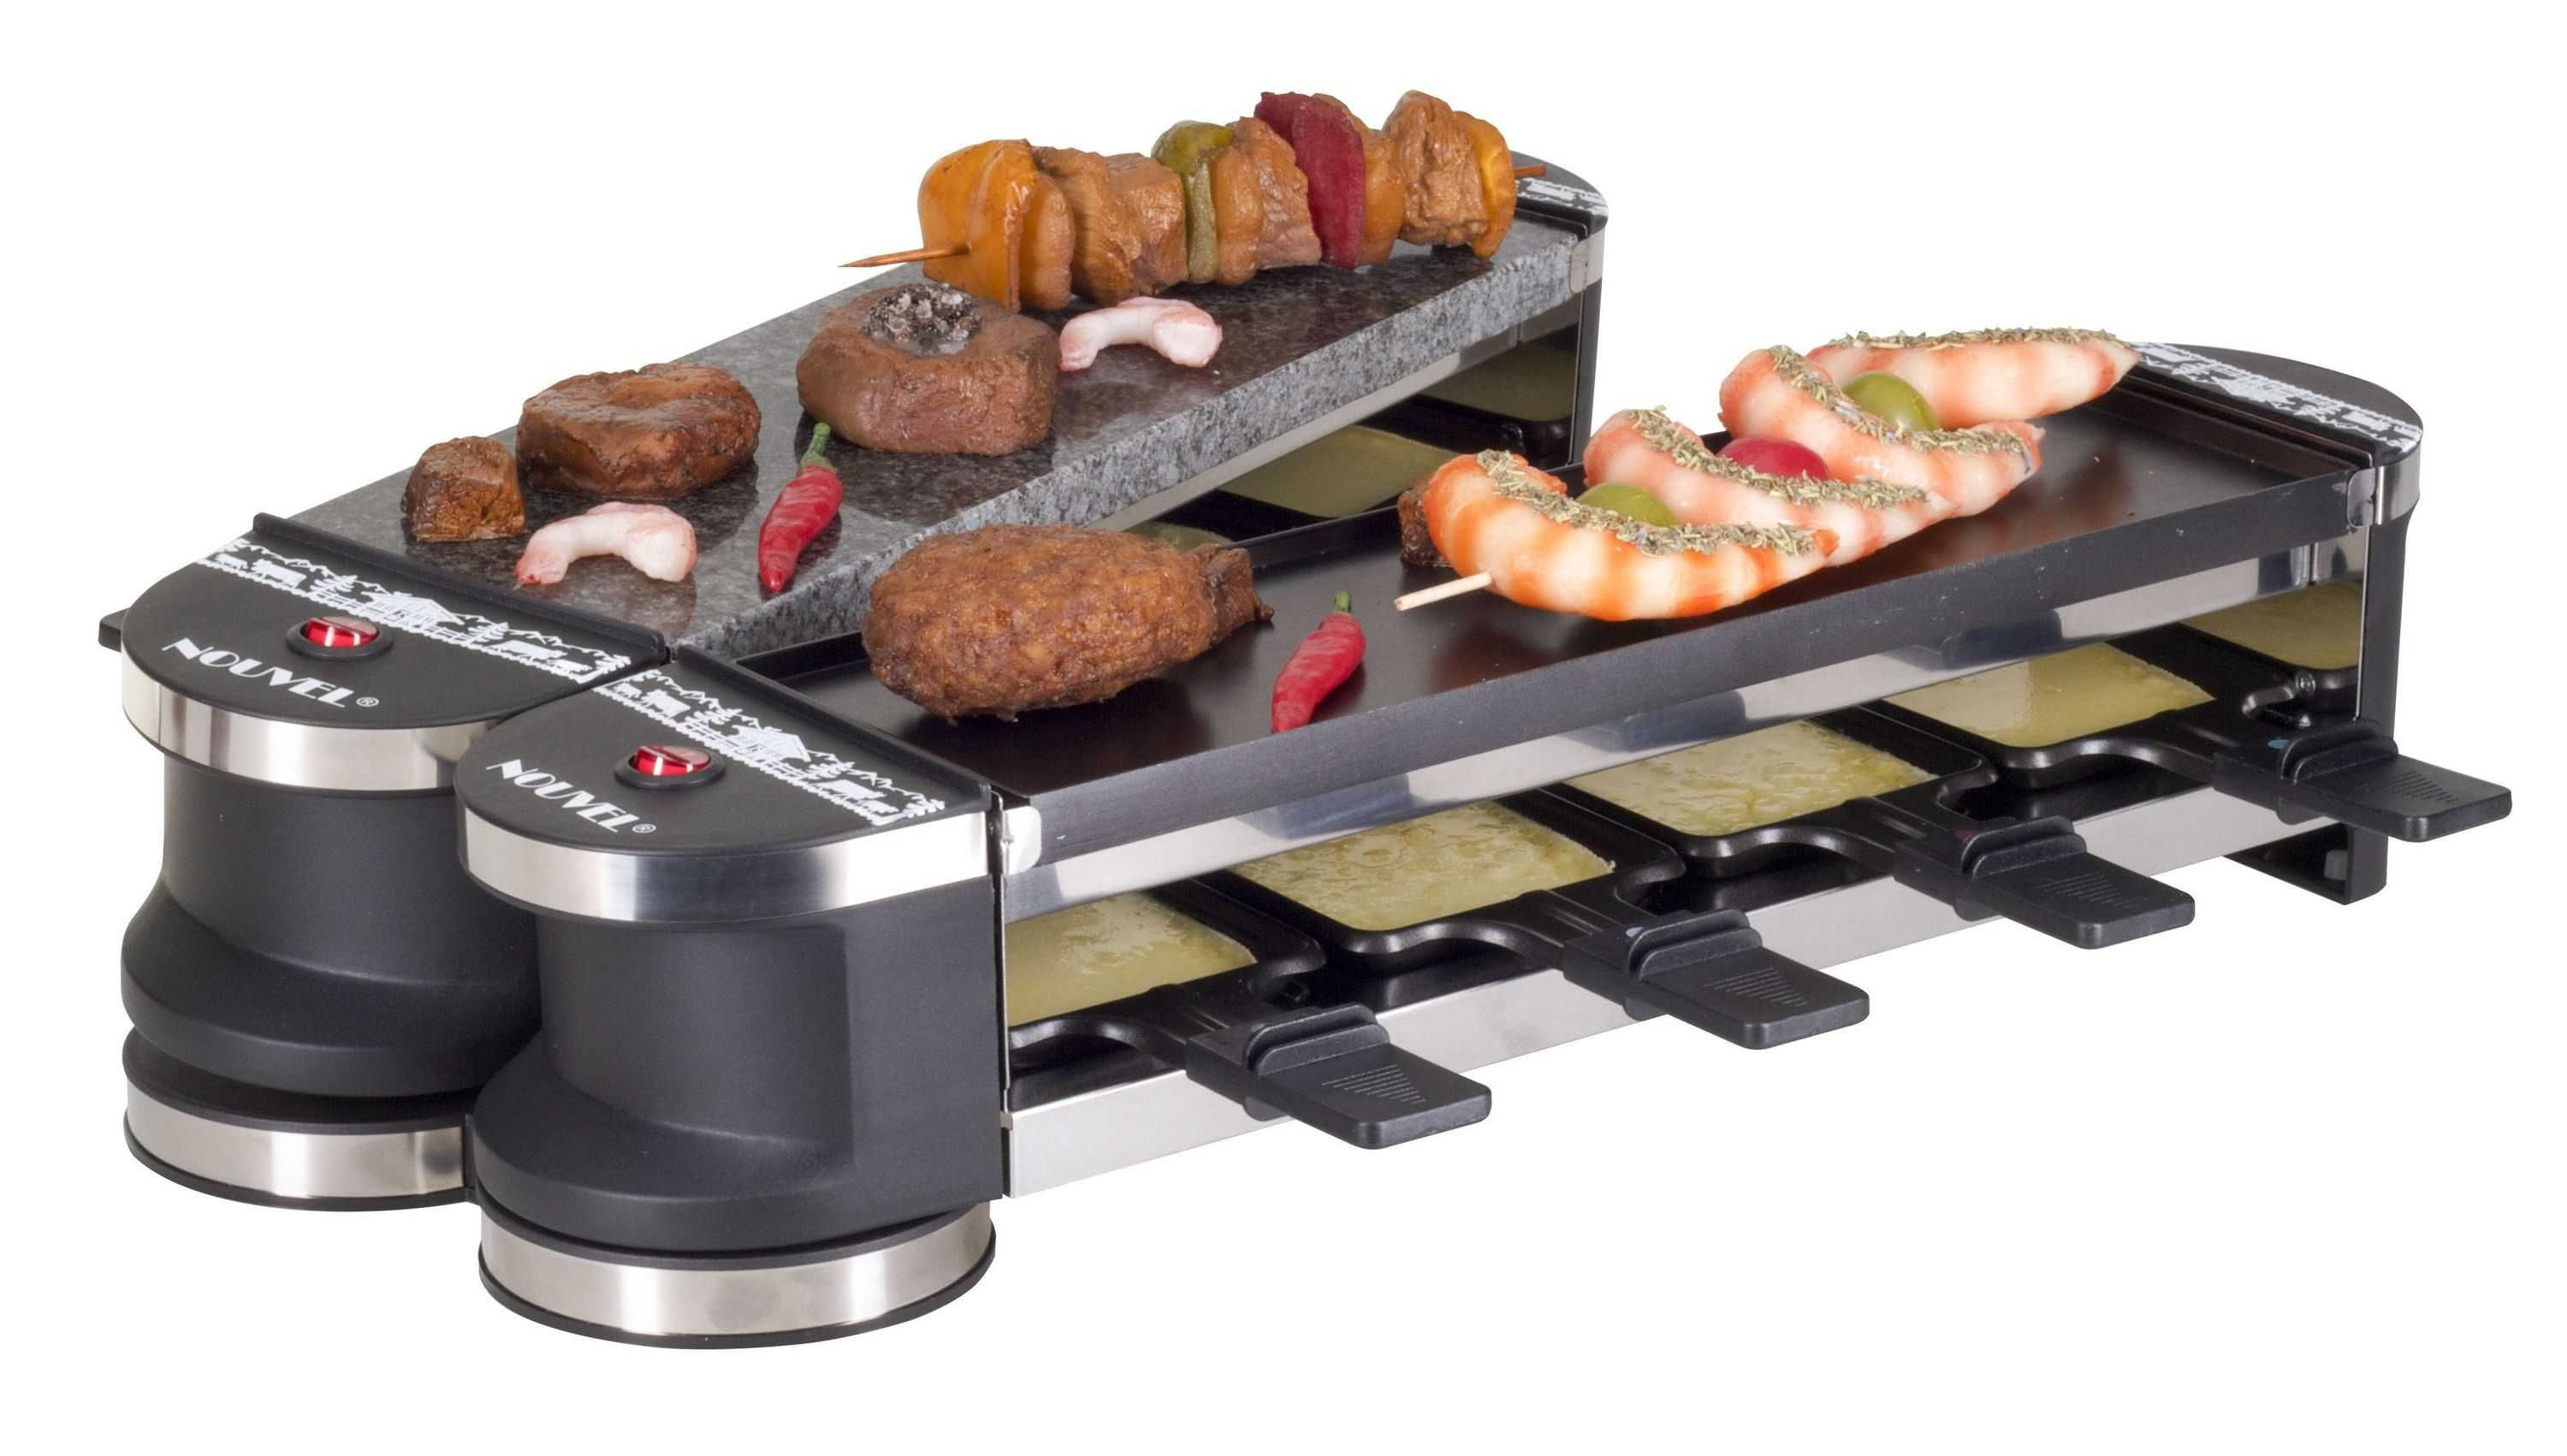 Nouvel Raclette Grill Docking 8 8 Personen Günstig Kaufen Raclette Grill Nouvel 401533 Heizleistung V Grillen Raclette Ofen Zubereitung